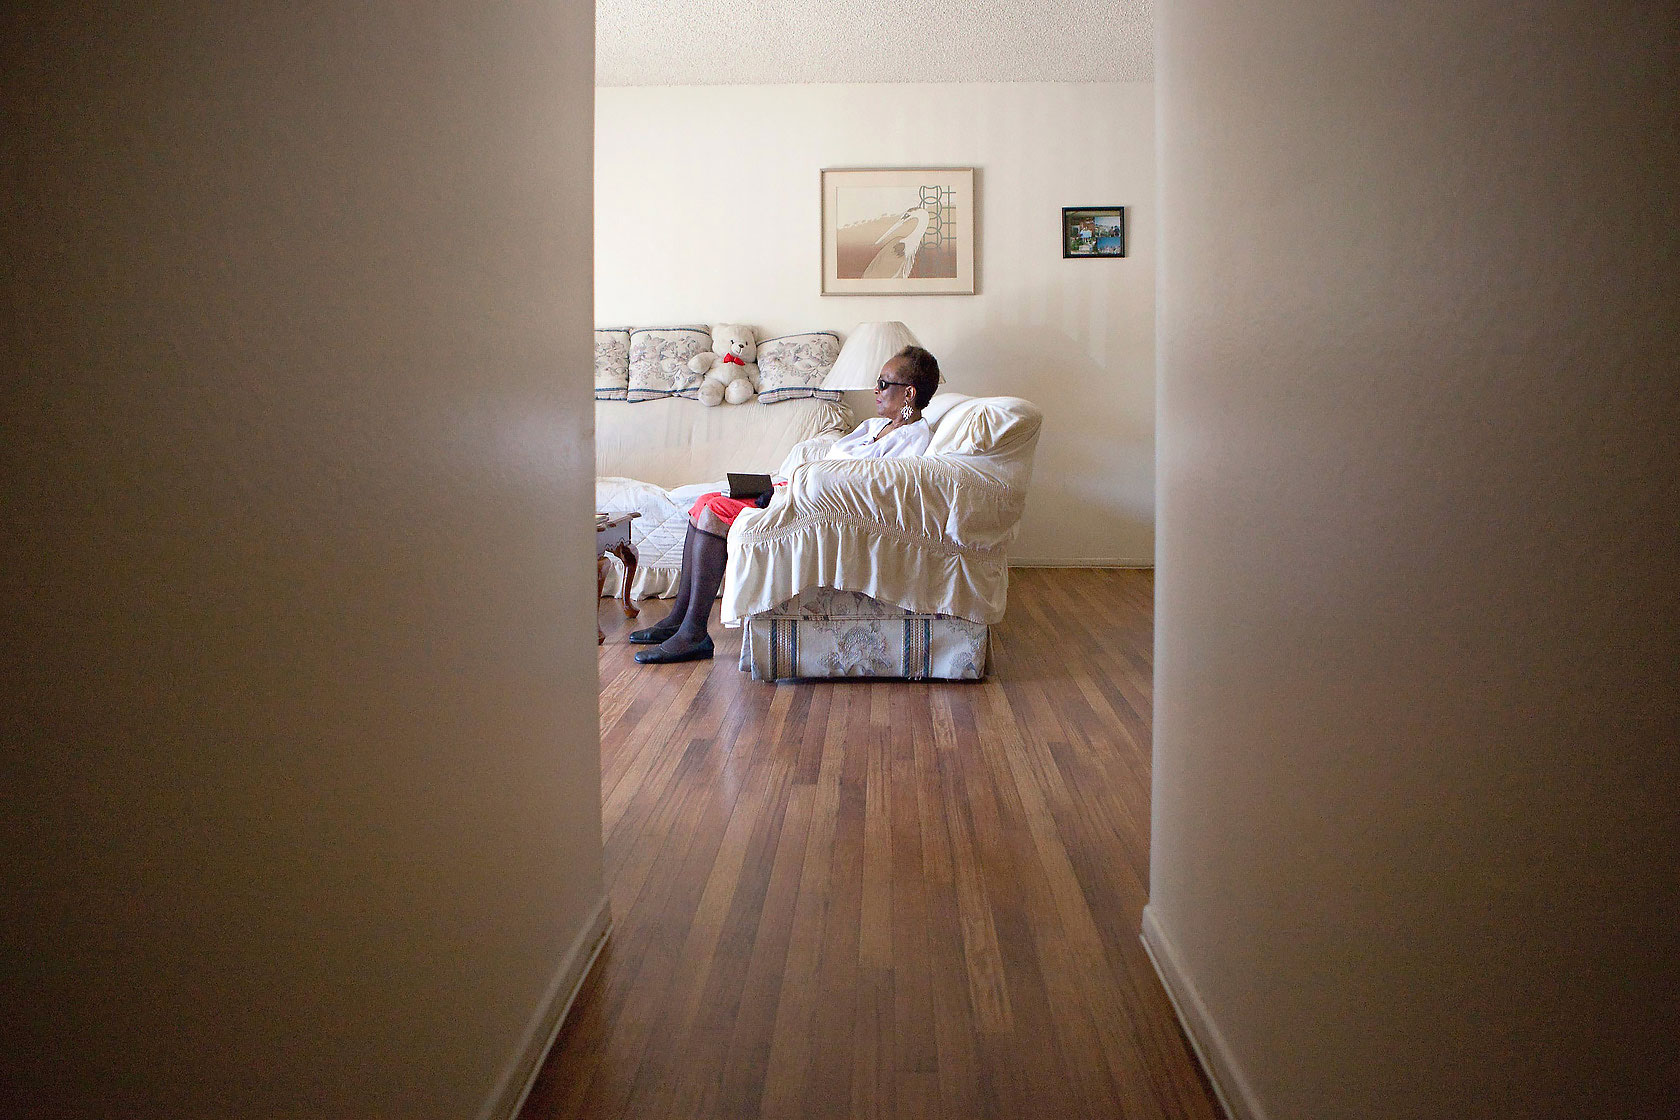 Editorial photography of a visually impaired woman sits on couch at the end of the hall waiting for assistance. Image by Phoenix commercial photographer Jason Koster.